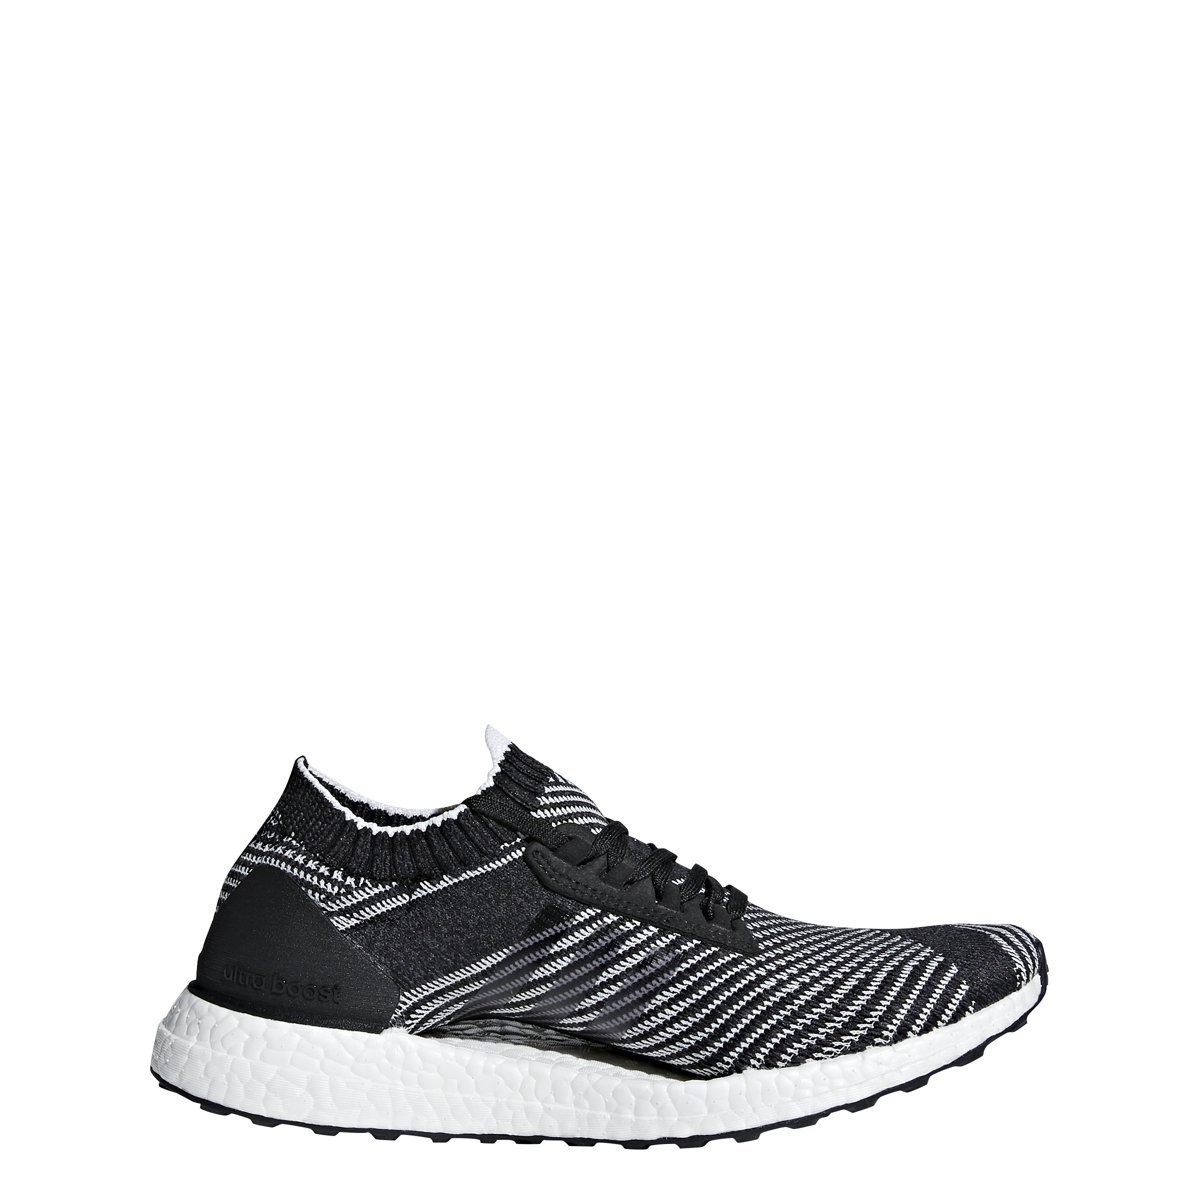 adidas Women's Ultraboost X Running Shoe B07B49FT86 10.5 B(M) US|Black/Grey Heather/White